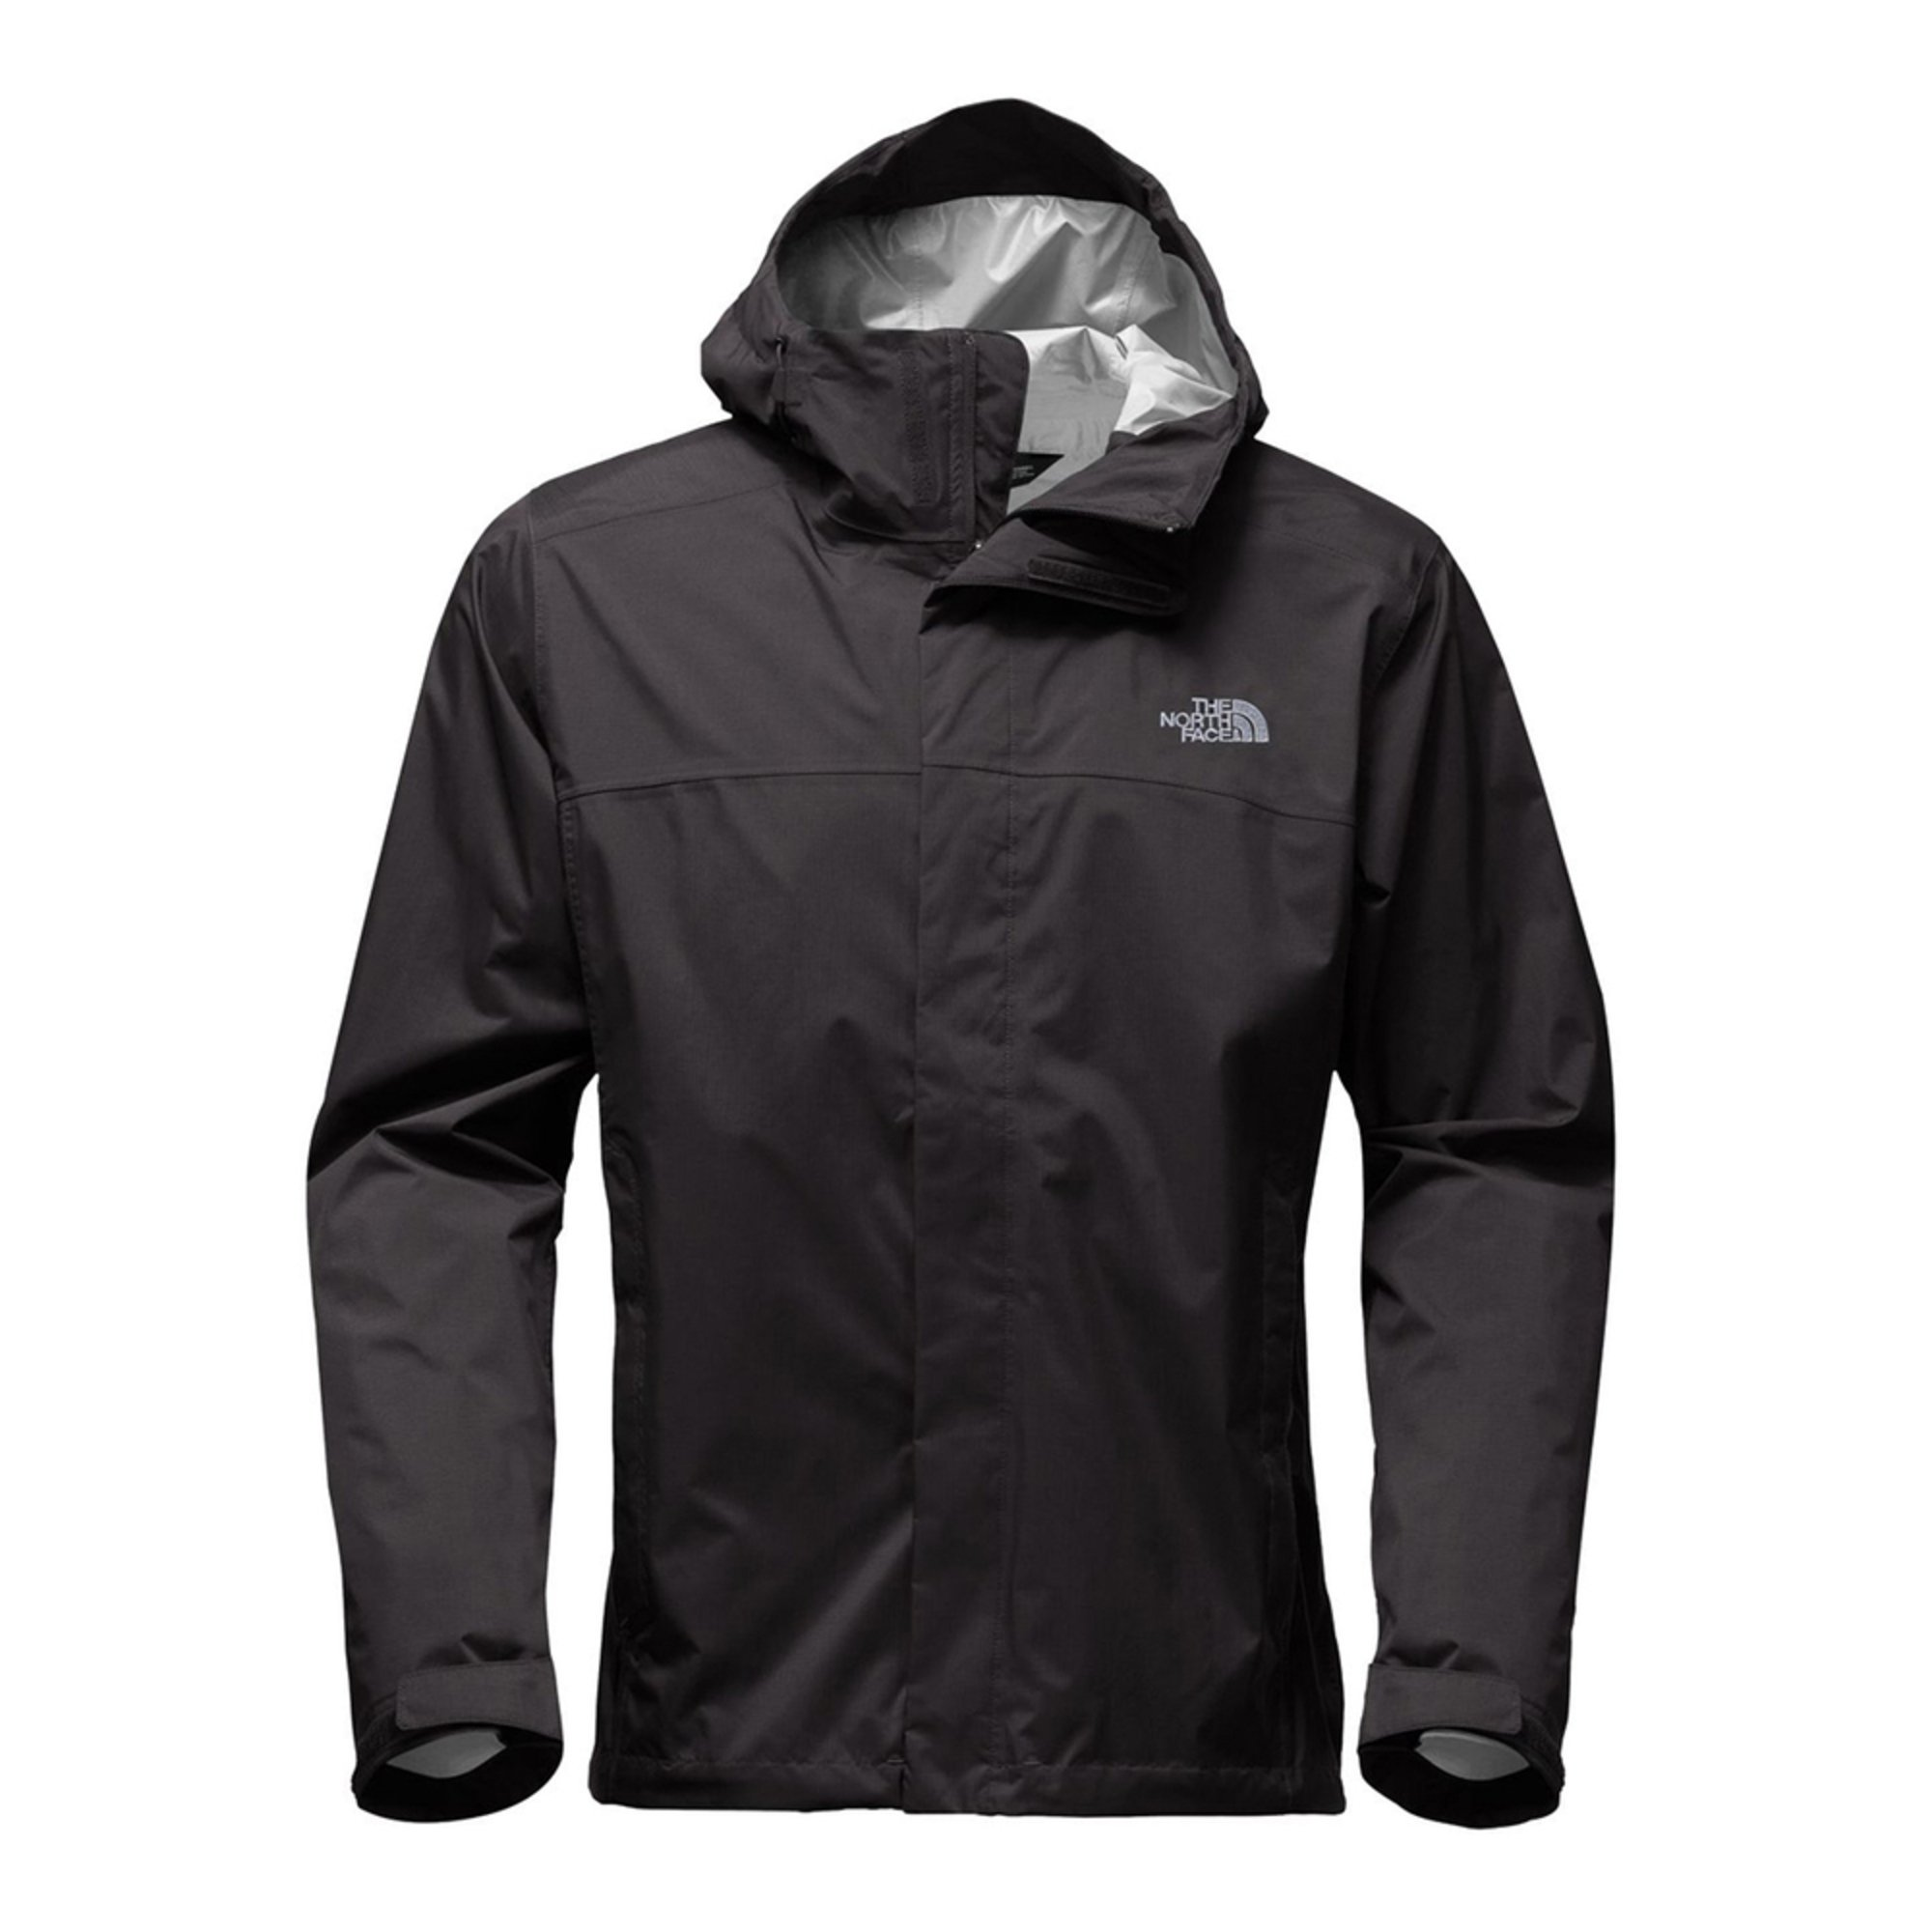 2998a782e The North Face Men's Venture 2 Jacket